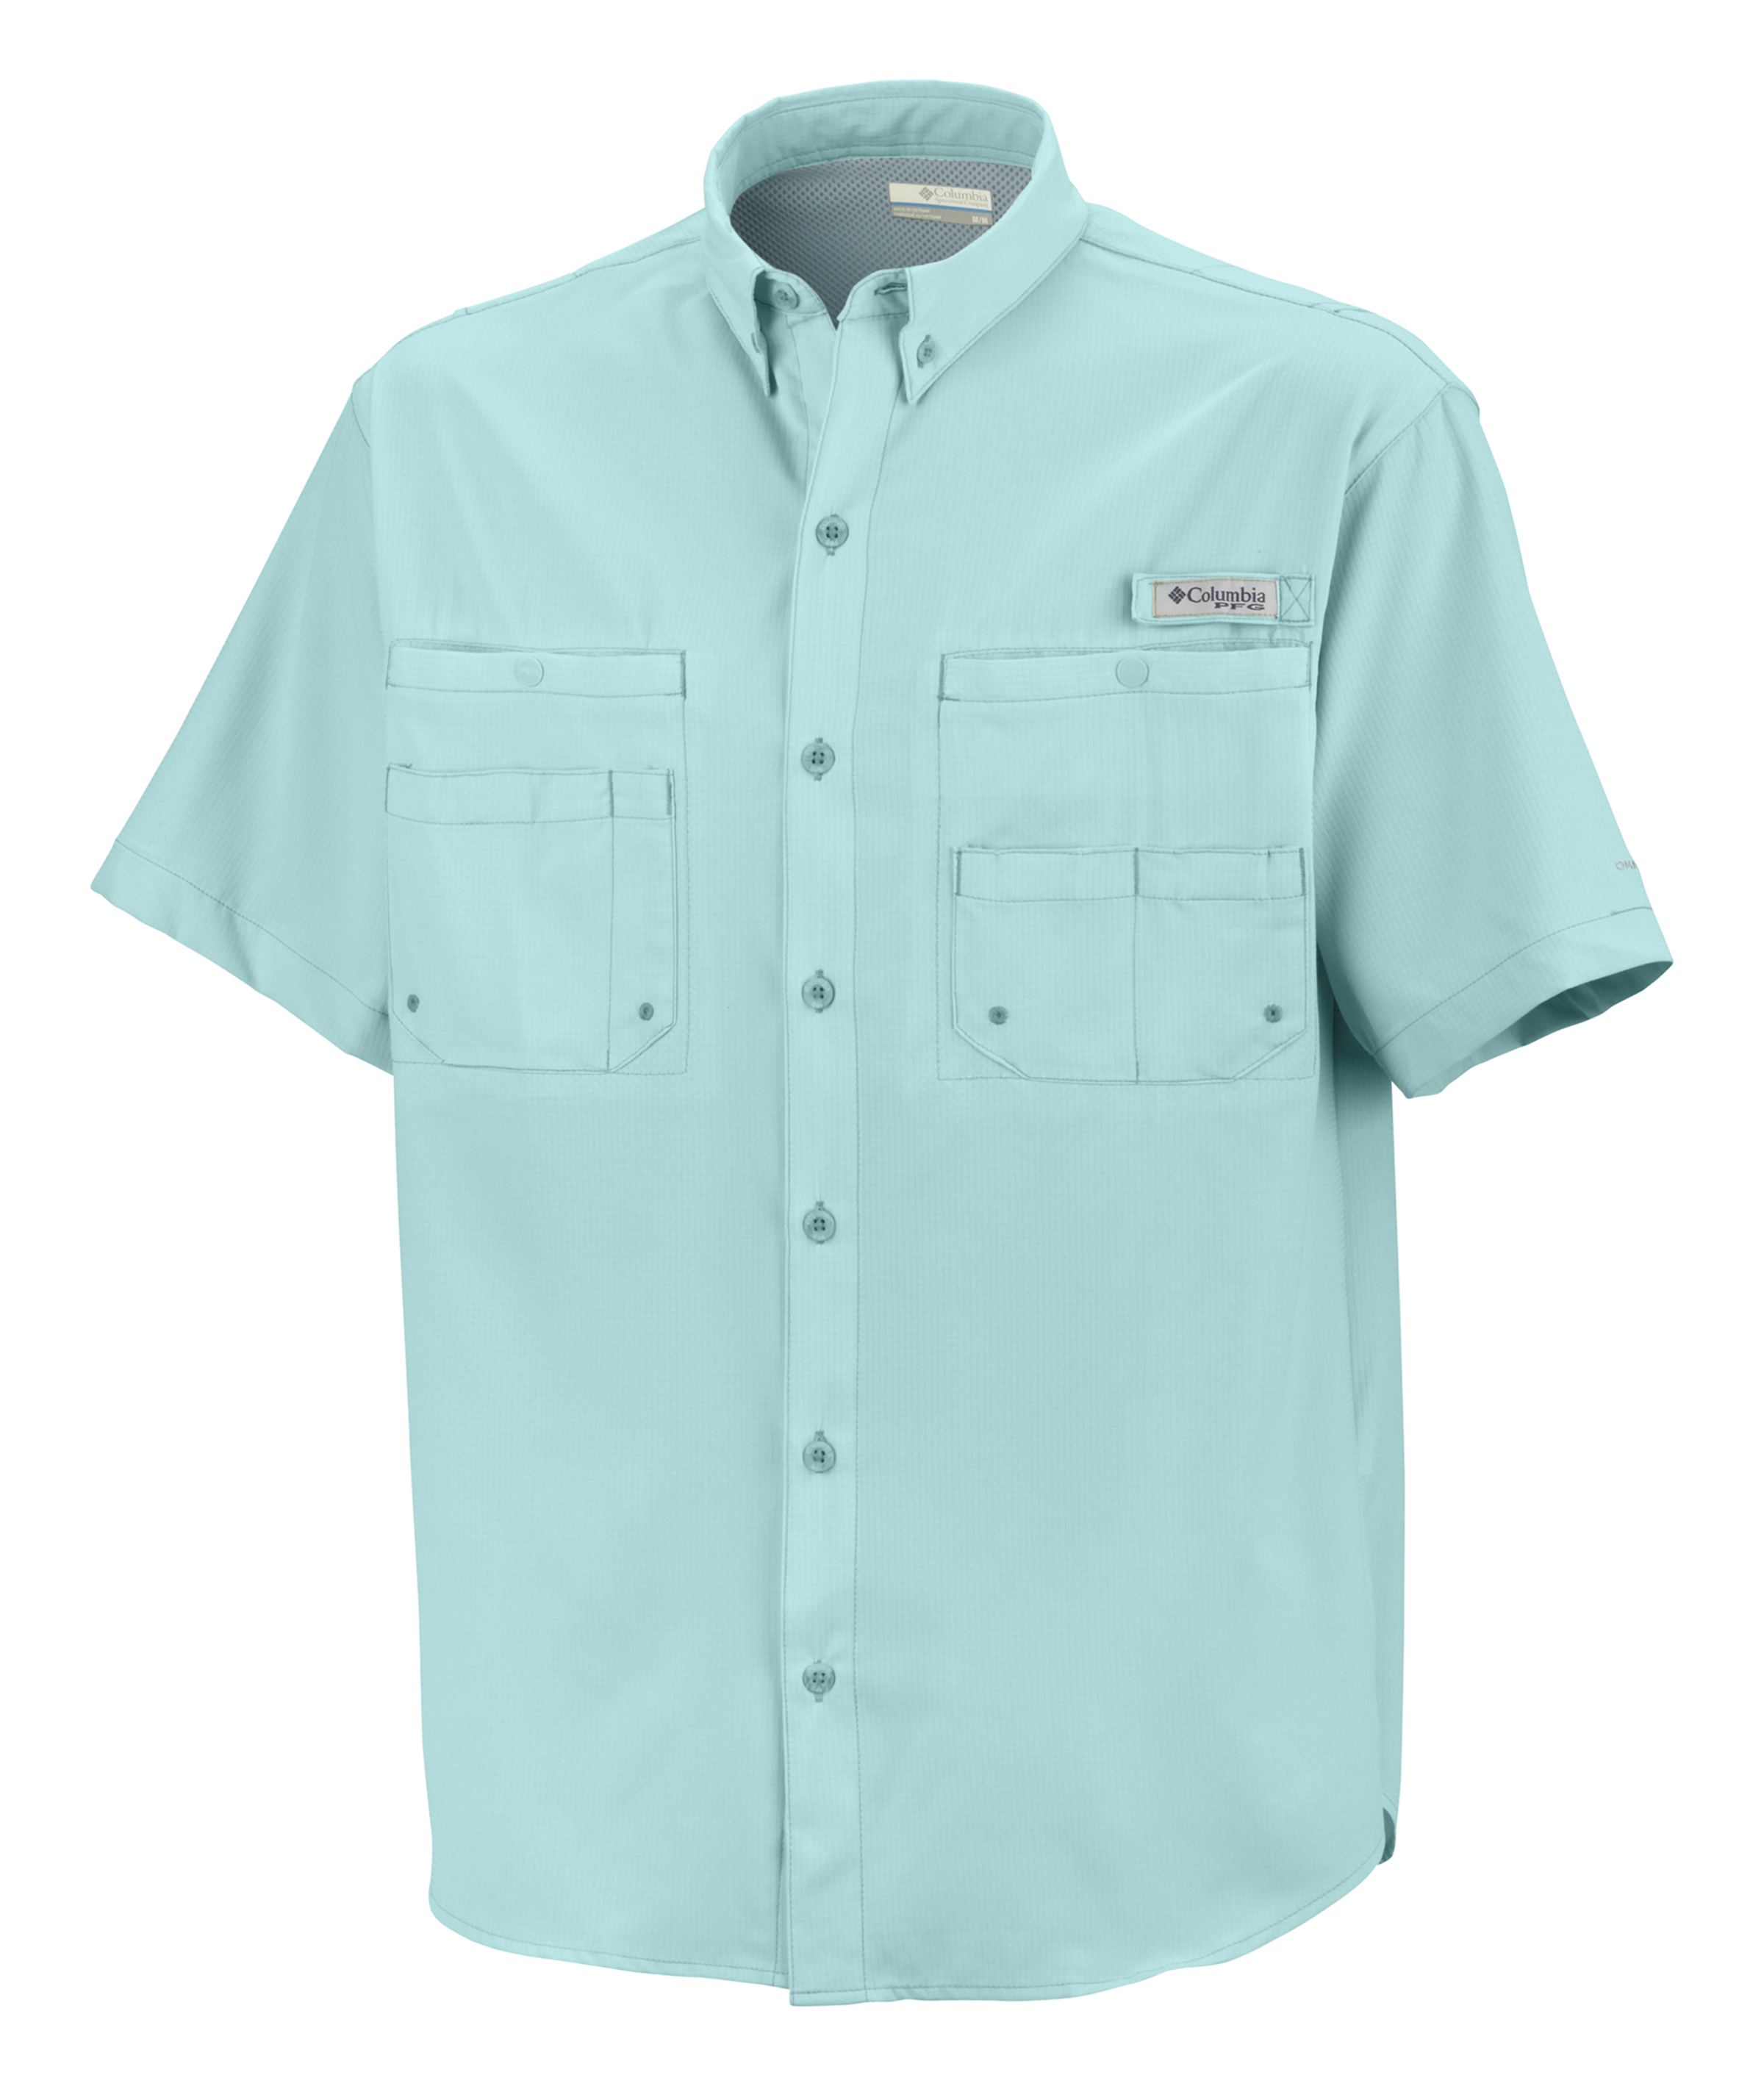 416c80f5d Columbia Men's Tamiami II Short Sleeve Fishing Shirt. 7266.